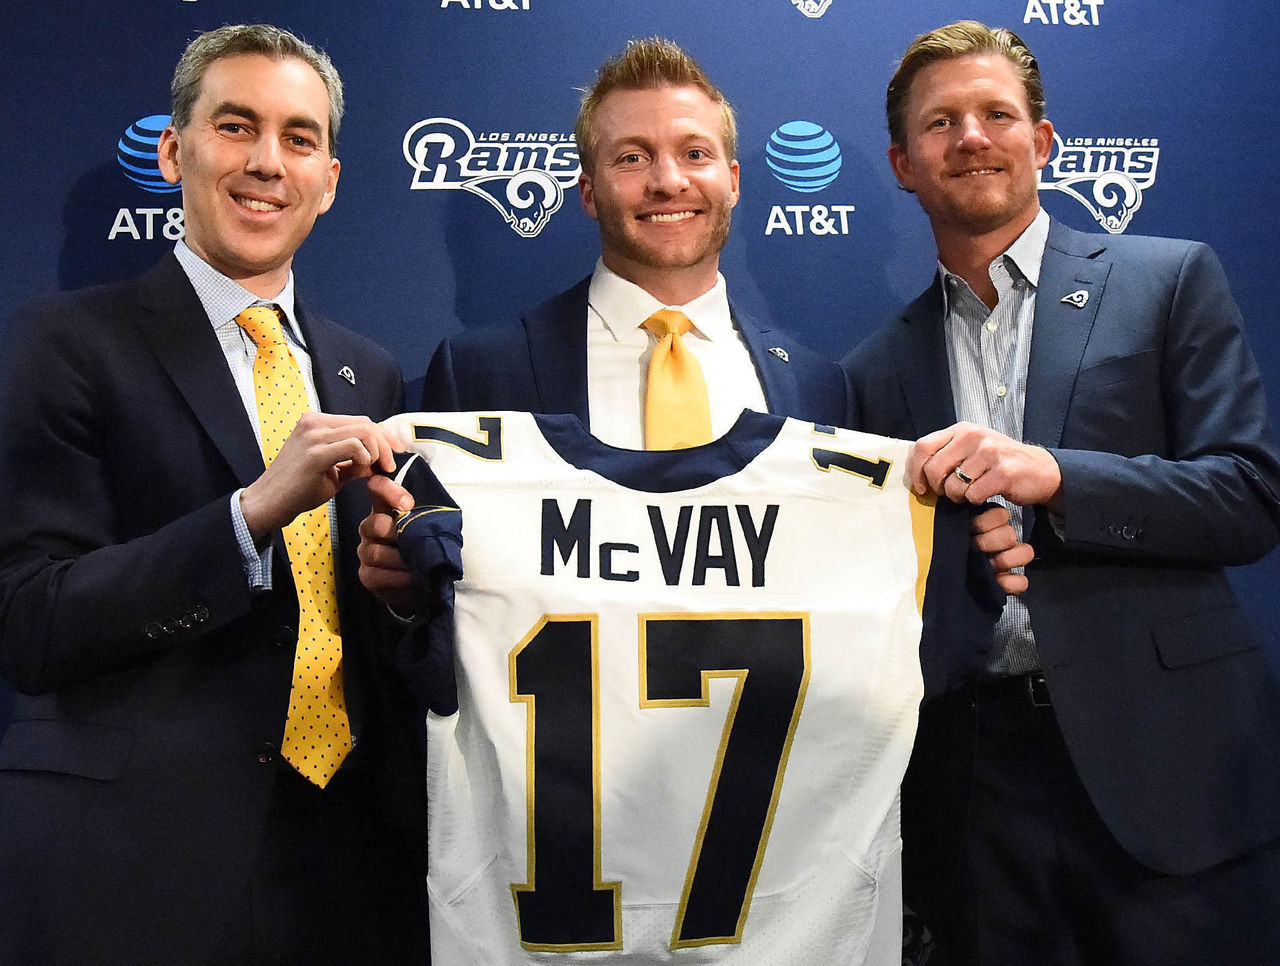 Cropped_2017-01-13t210212z_2069536631_nocid_rtrmadp_3_nfl-los-angeles-rams-sean-mcvay-press-conference